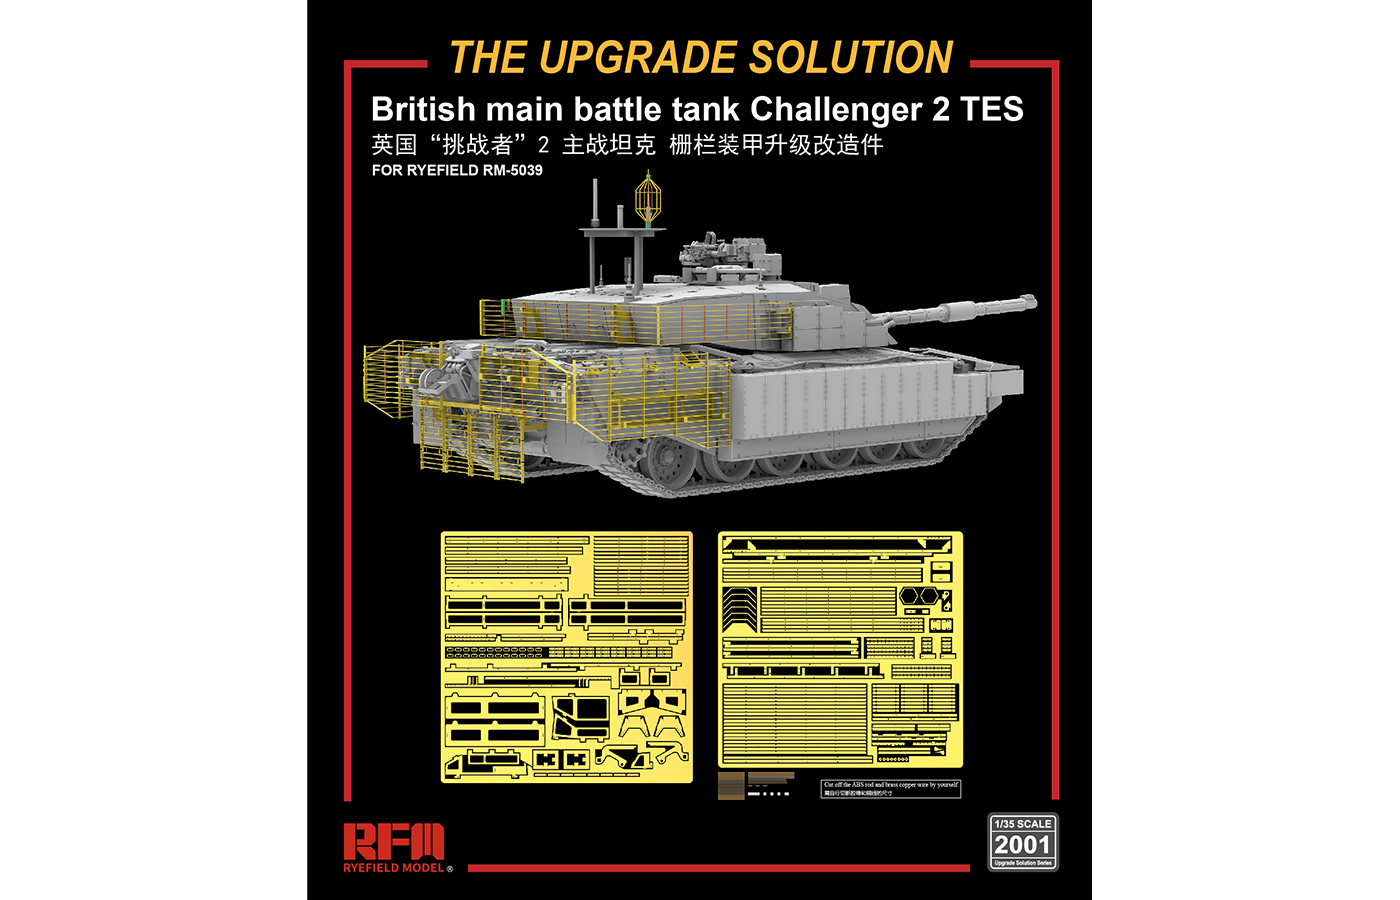 RM-2001 British main battle tank Challenger 2 TES UPGRADE SOLUTION